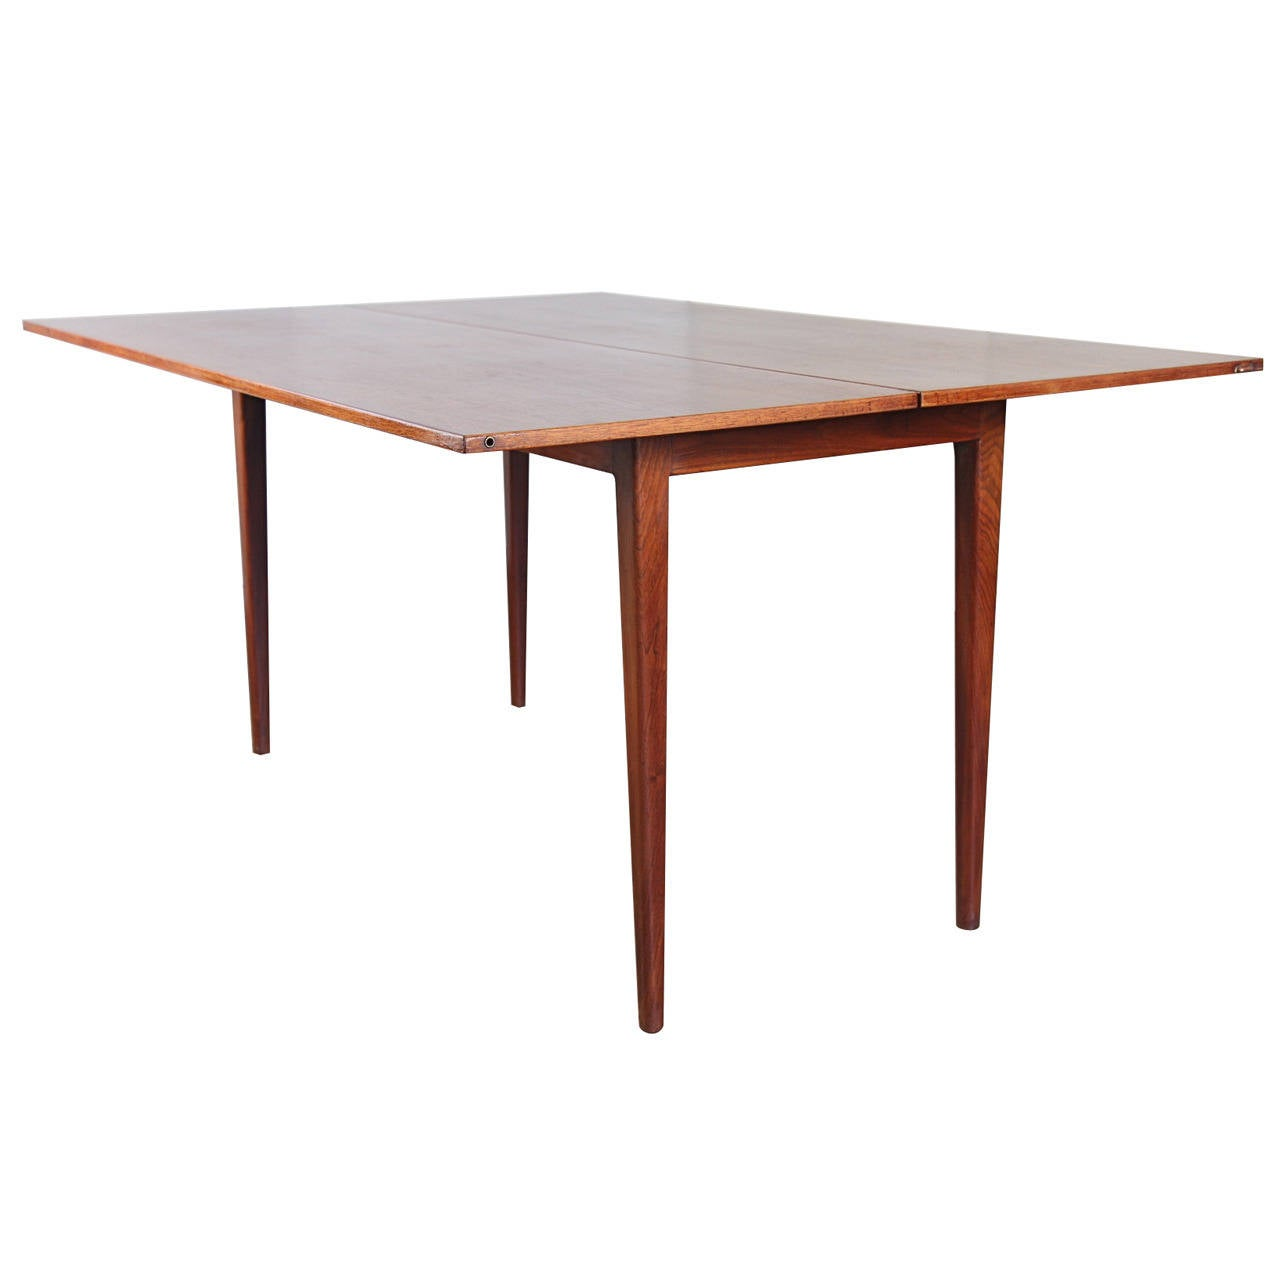 jens risom t-170 console dining table at 1stdibs